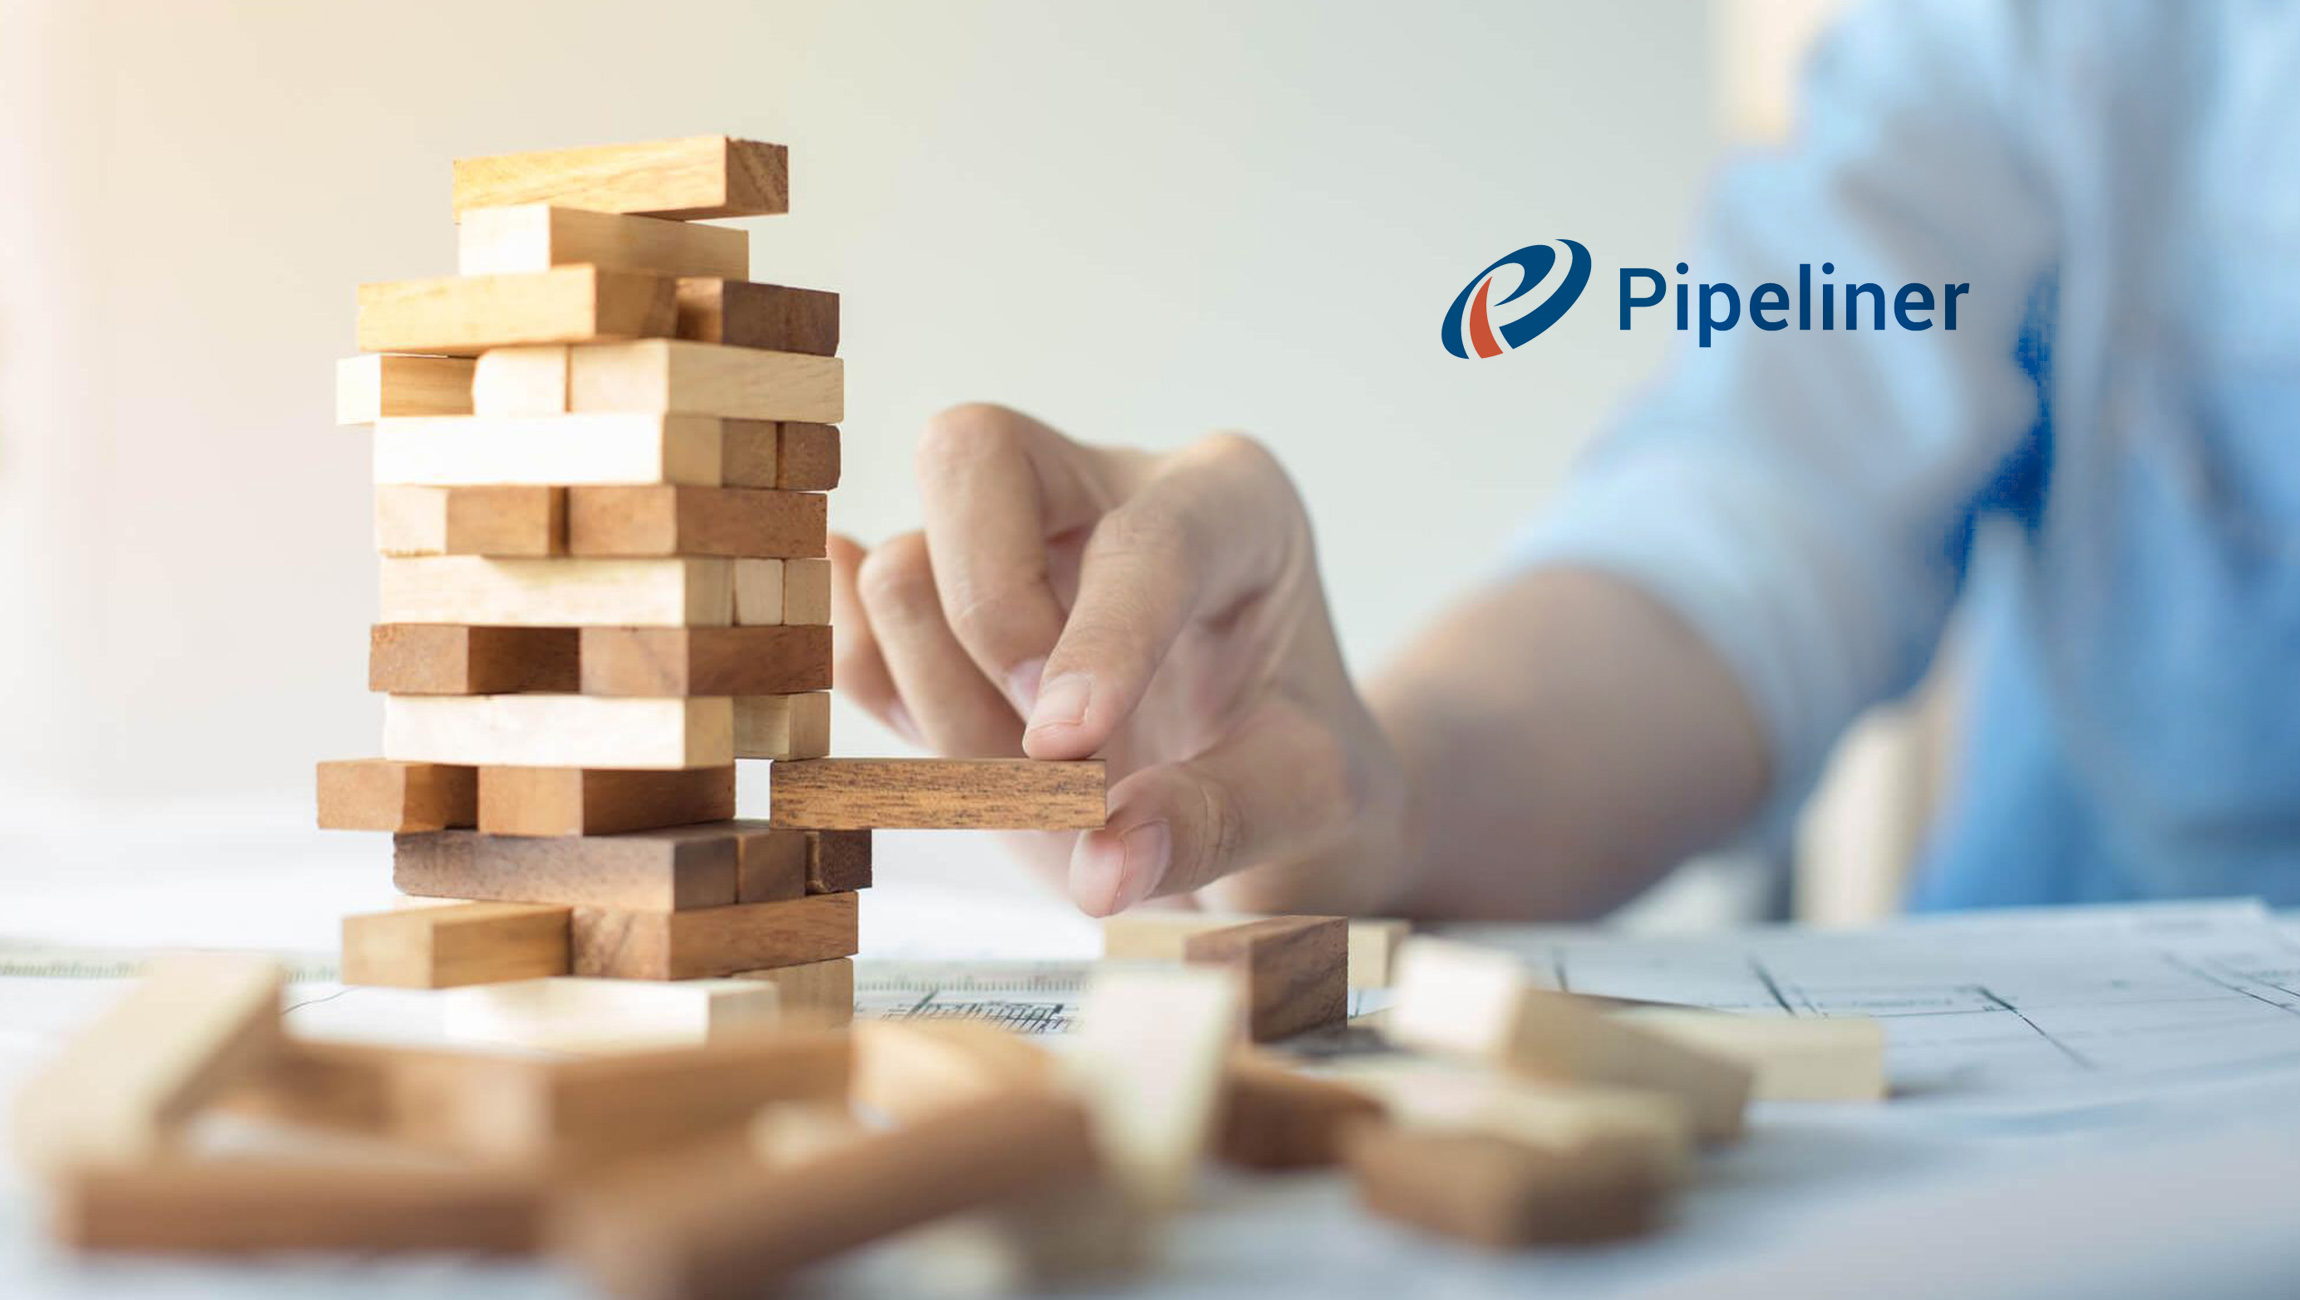 Pipeliner Partners With Daniel Strunk of DePaul University to Release Sales Strategy & Technology Online Course